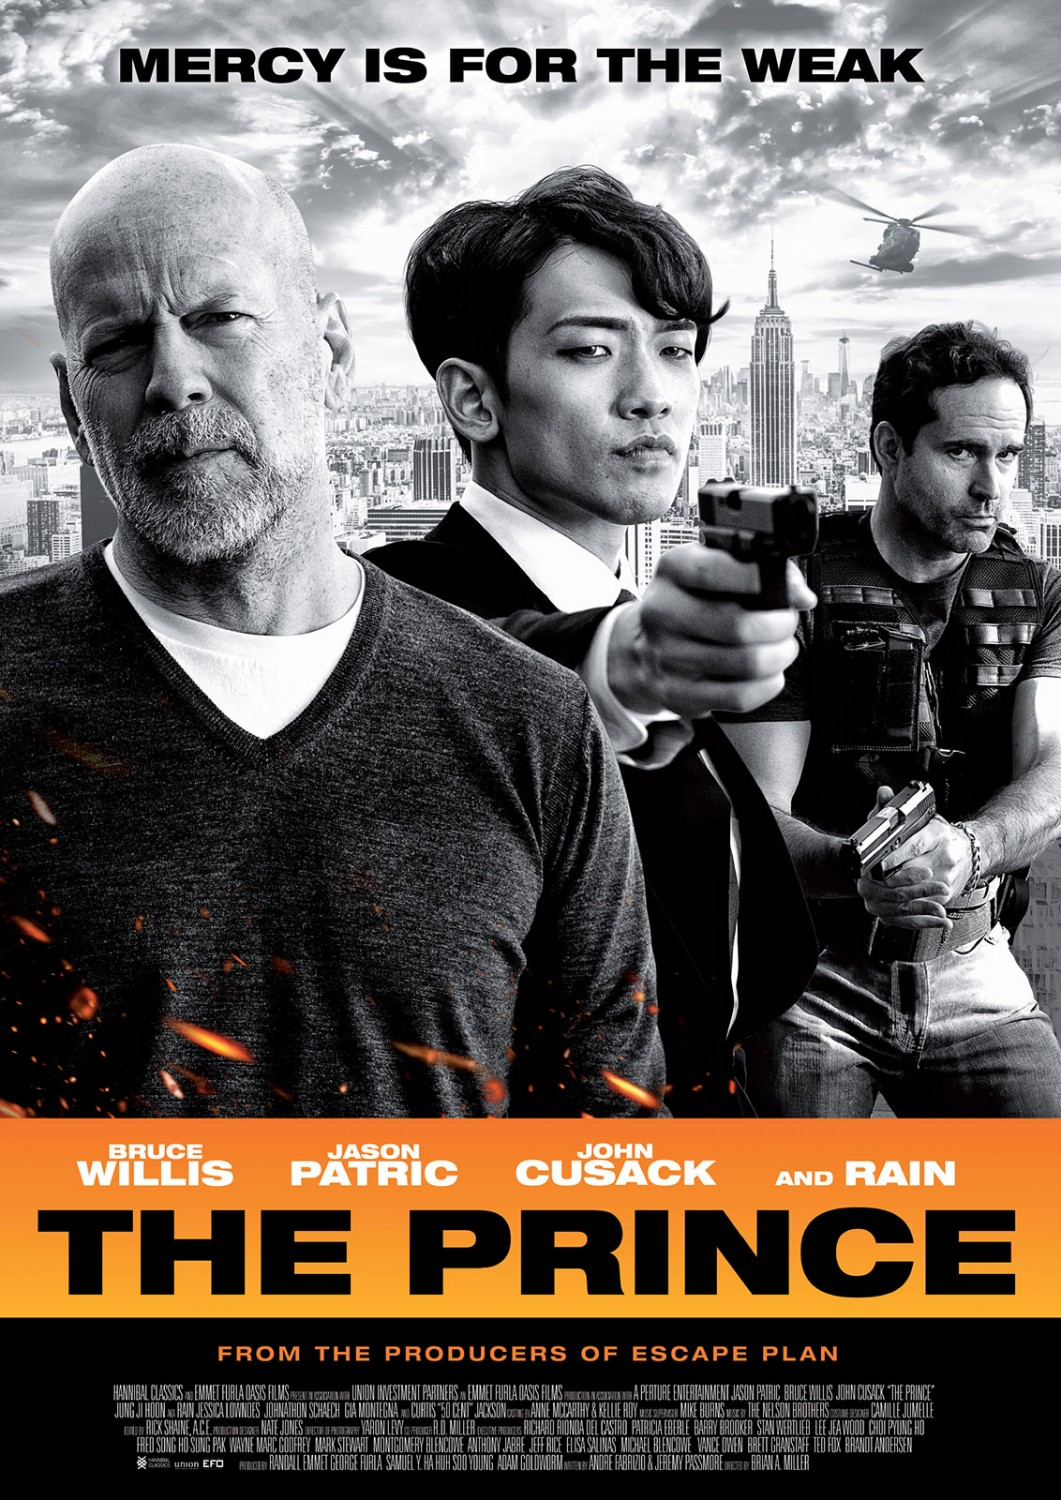 The Prince-Official Poster Banner PROMO XLG-30JUNHO2014-02